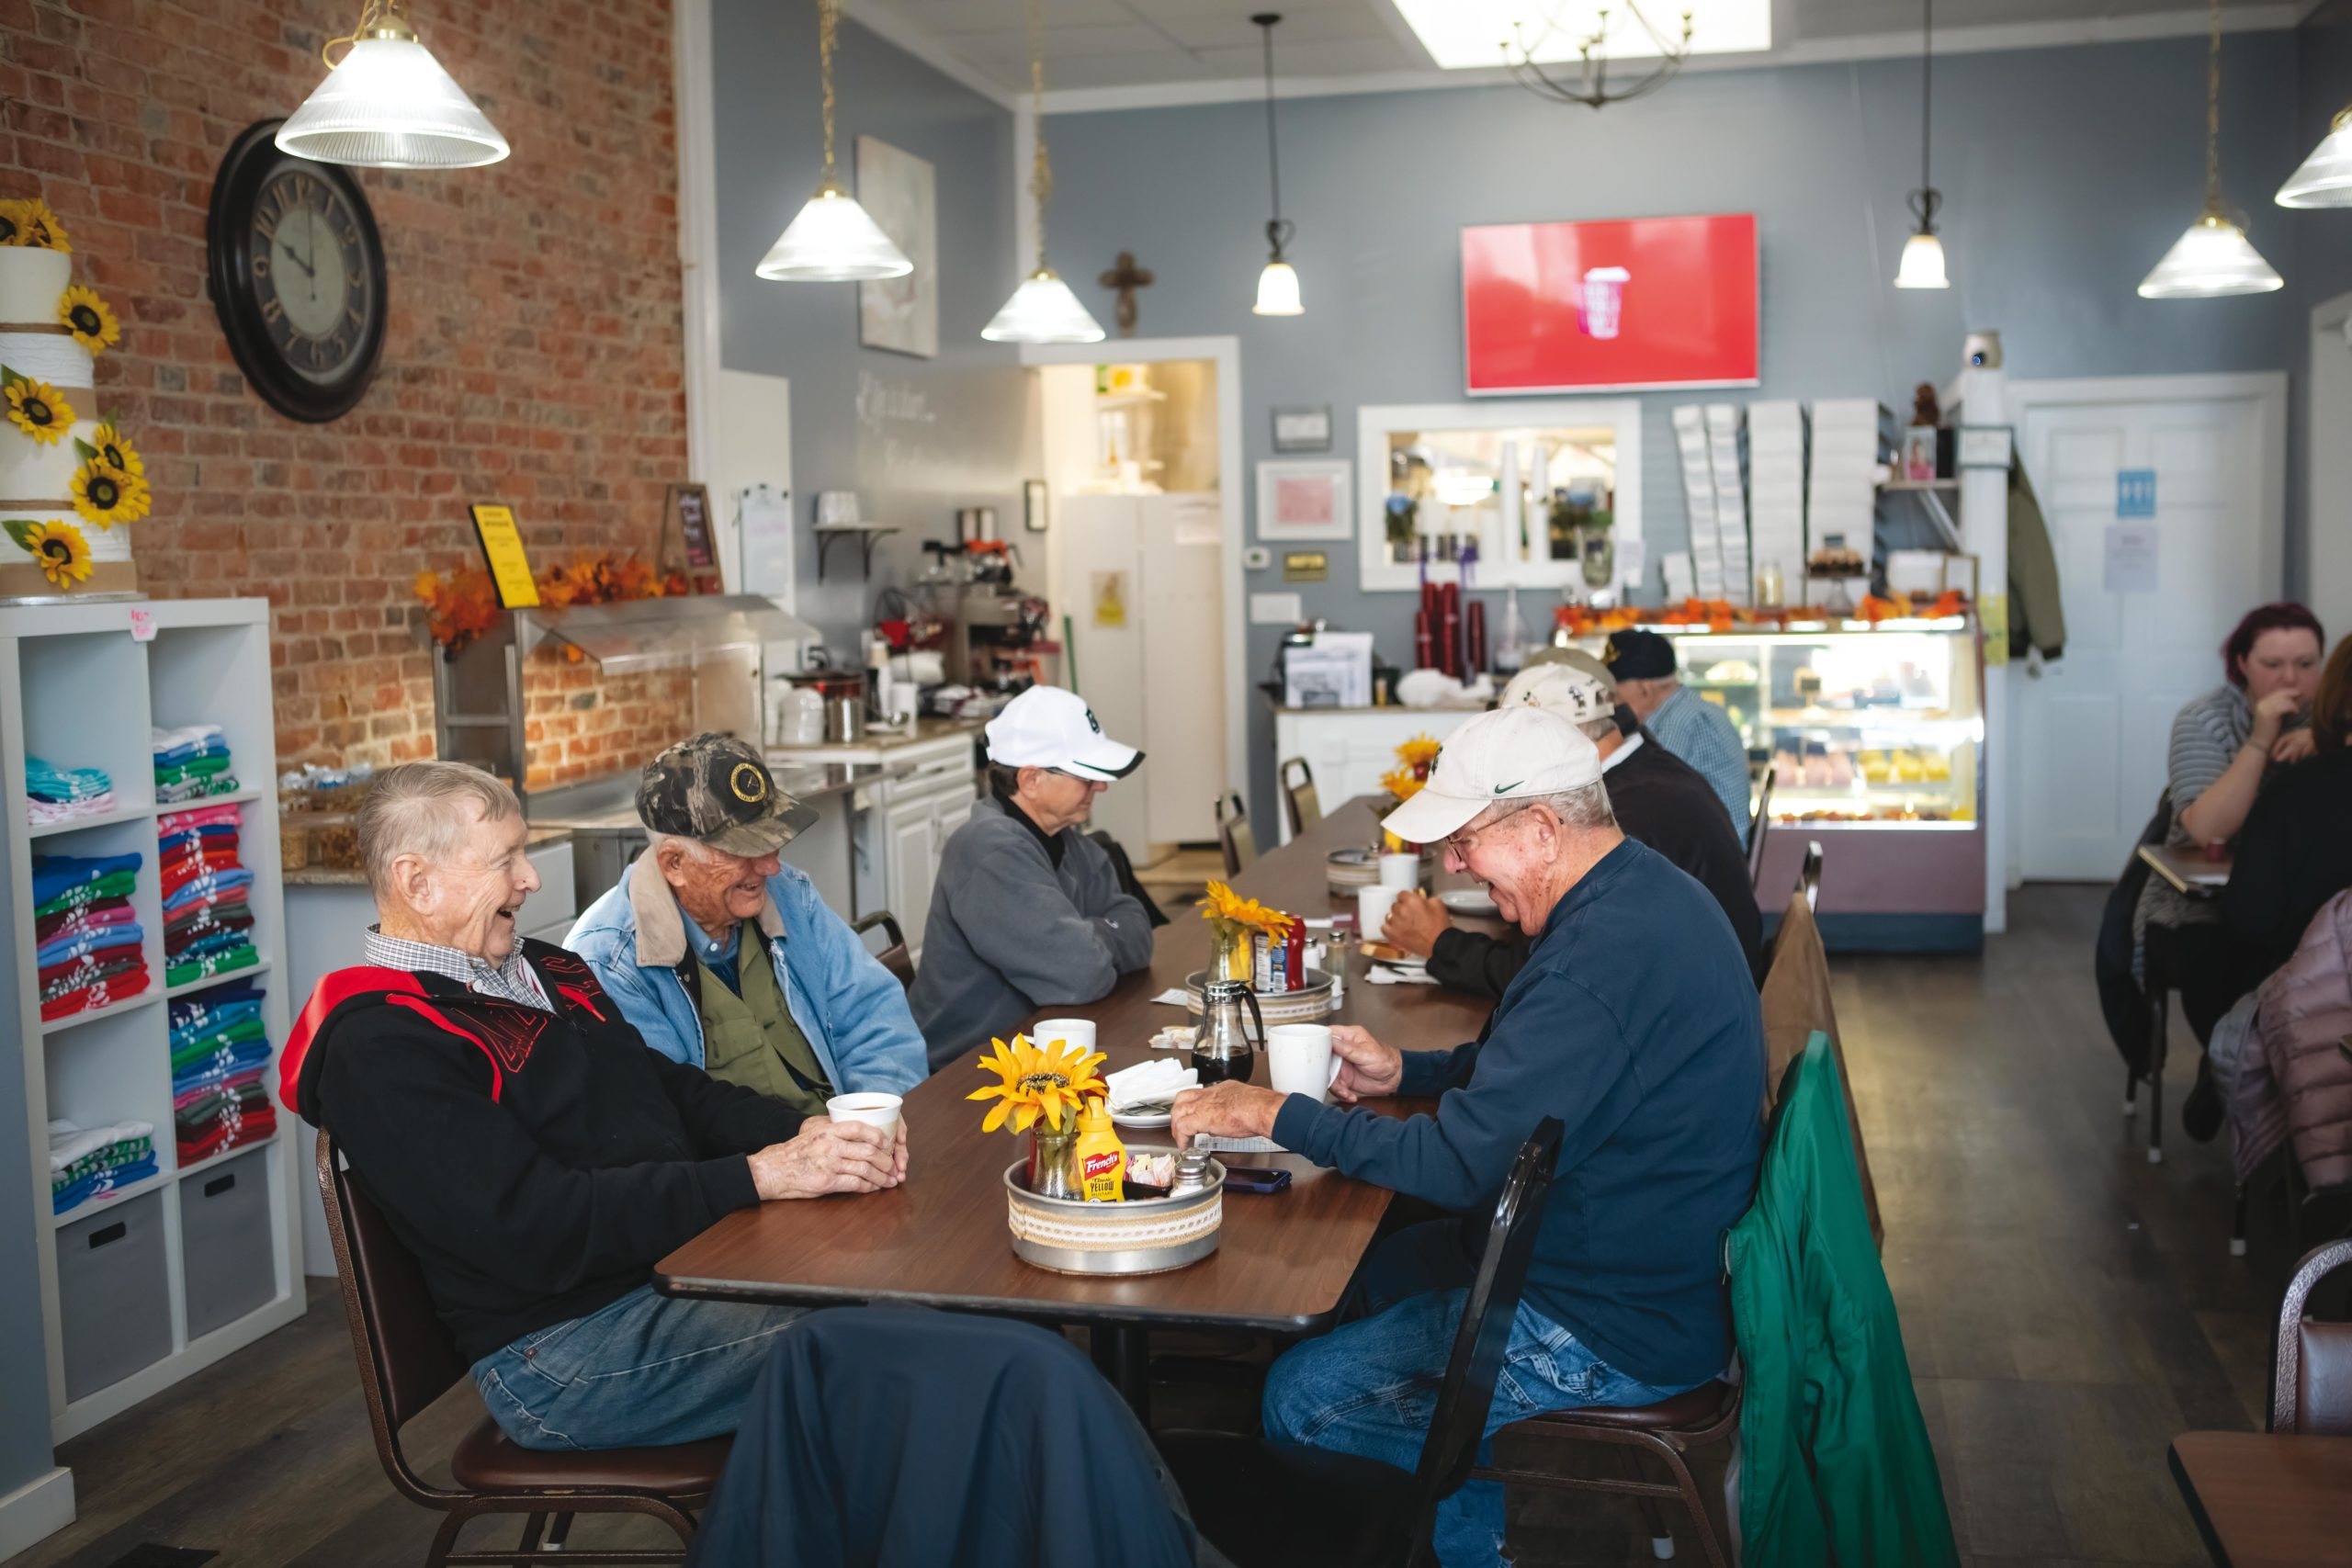 Randall Miller, Morris Lewman and Tom Haase are talking and lauging while having coffee at The Burch Tree Cafe and Bakery in downtown Knightstown, Indiana